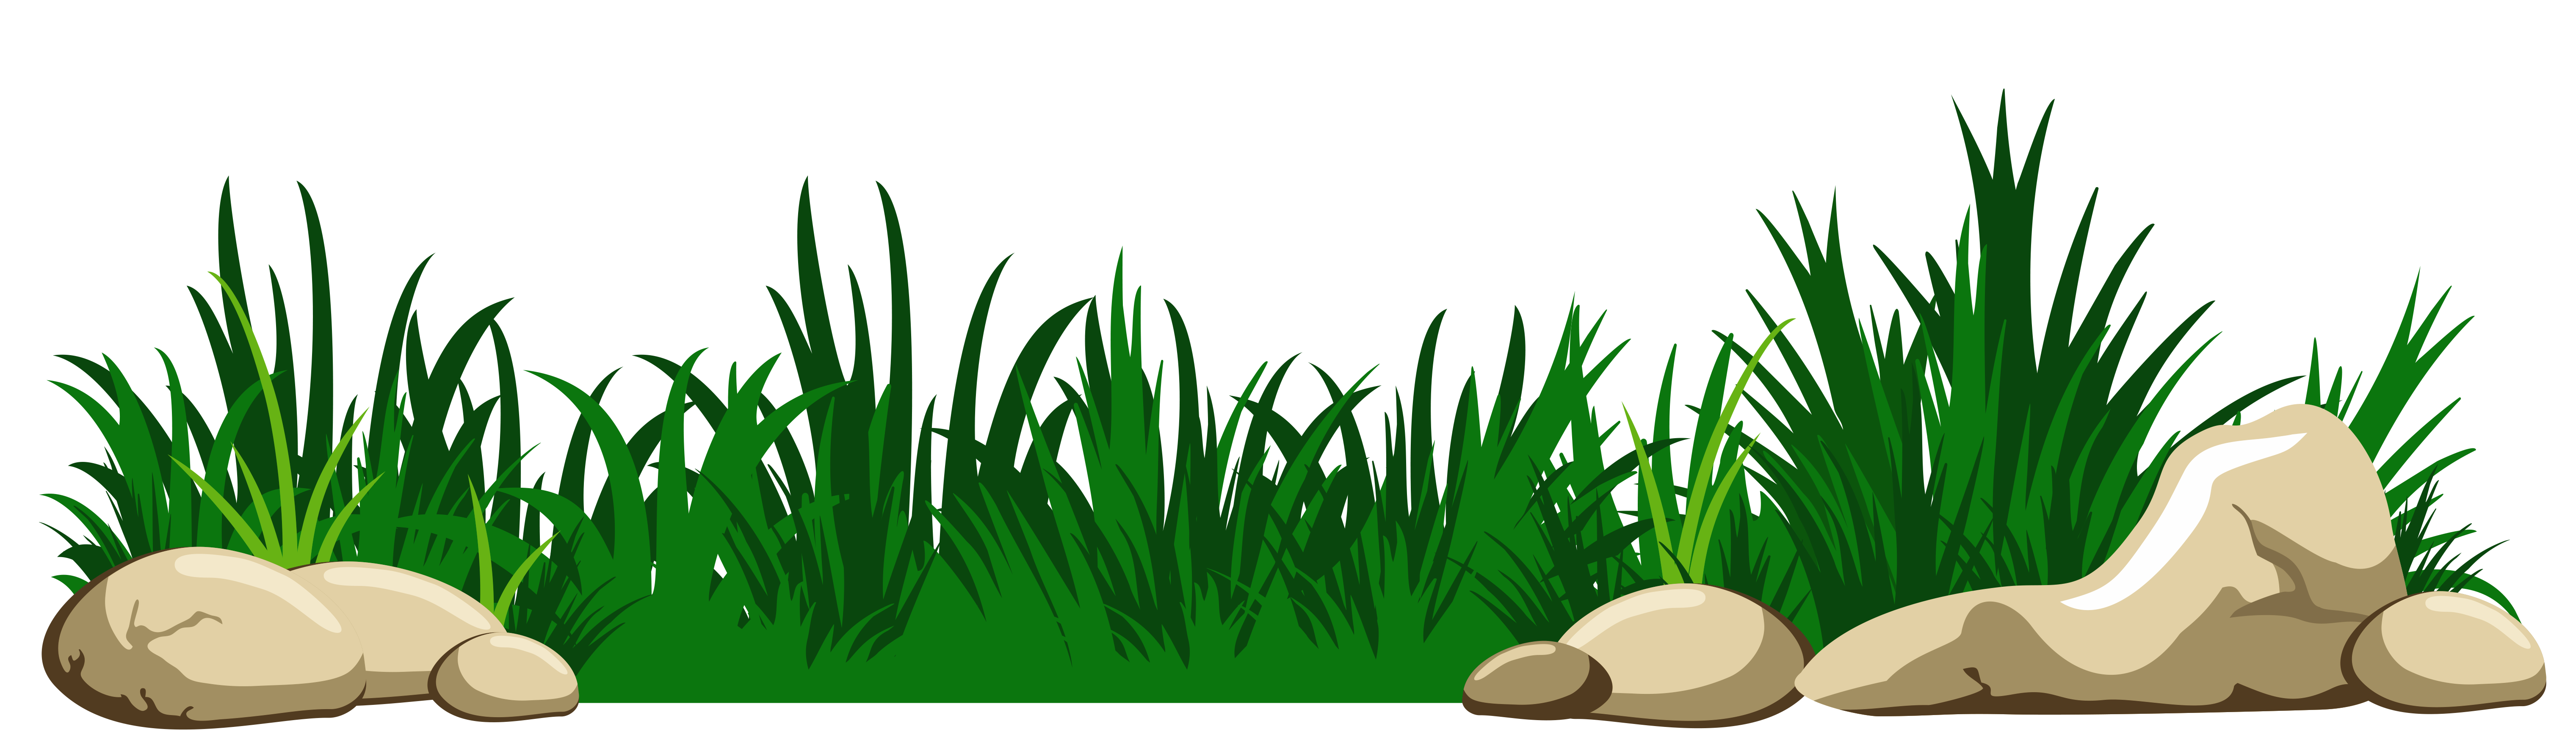 svg royalty free Swamp free on dumielauxepices. Lawn care clipart realistic grass.